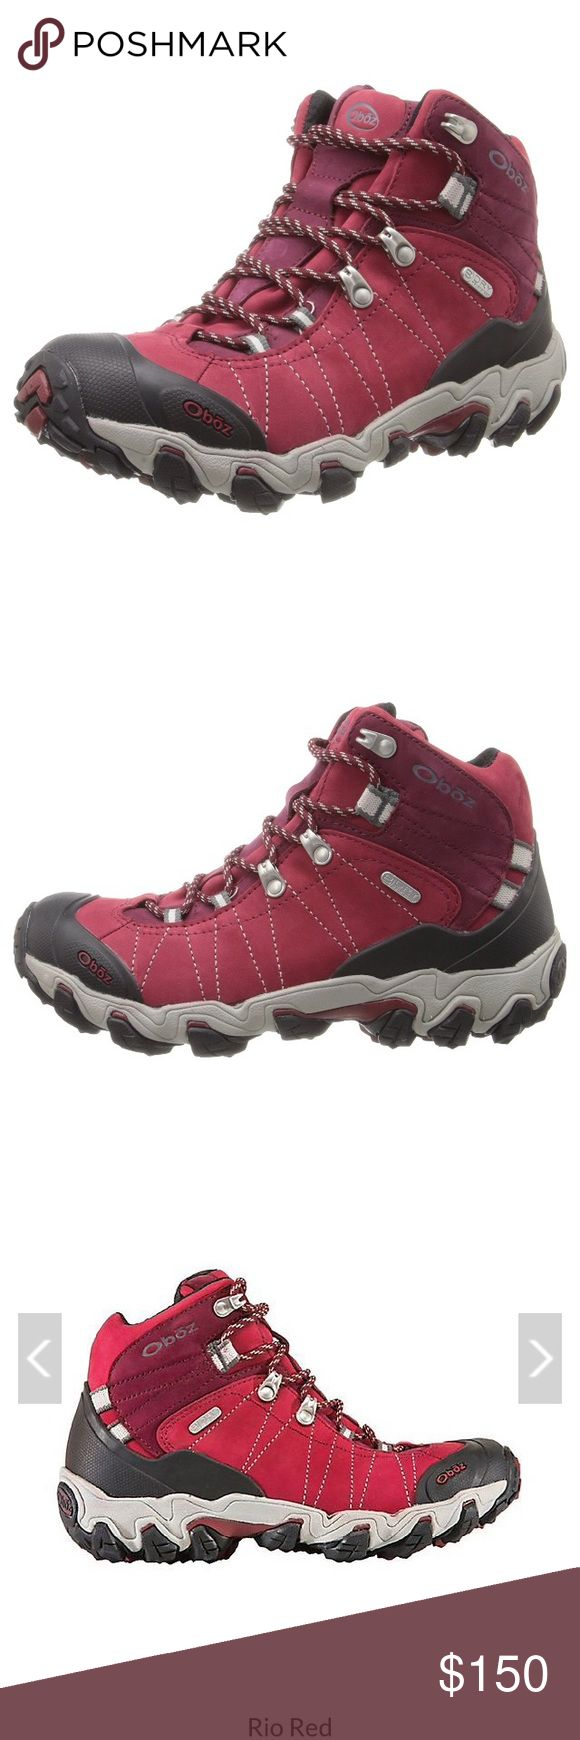 Oboz women's Bridger b-dry hiking boot Brand new! Worn twice, can't return they were too small. Size 8. oboz Shoes Lace Up Boots